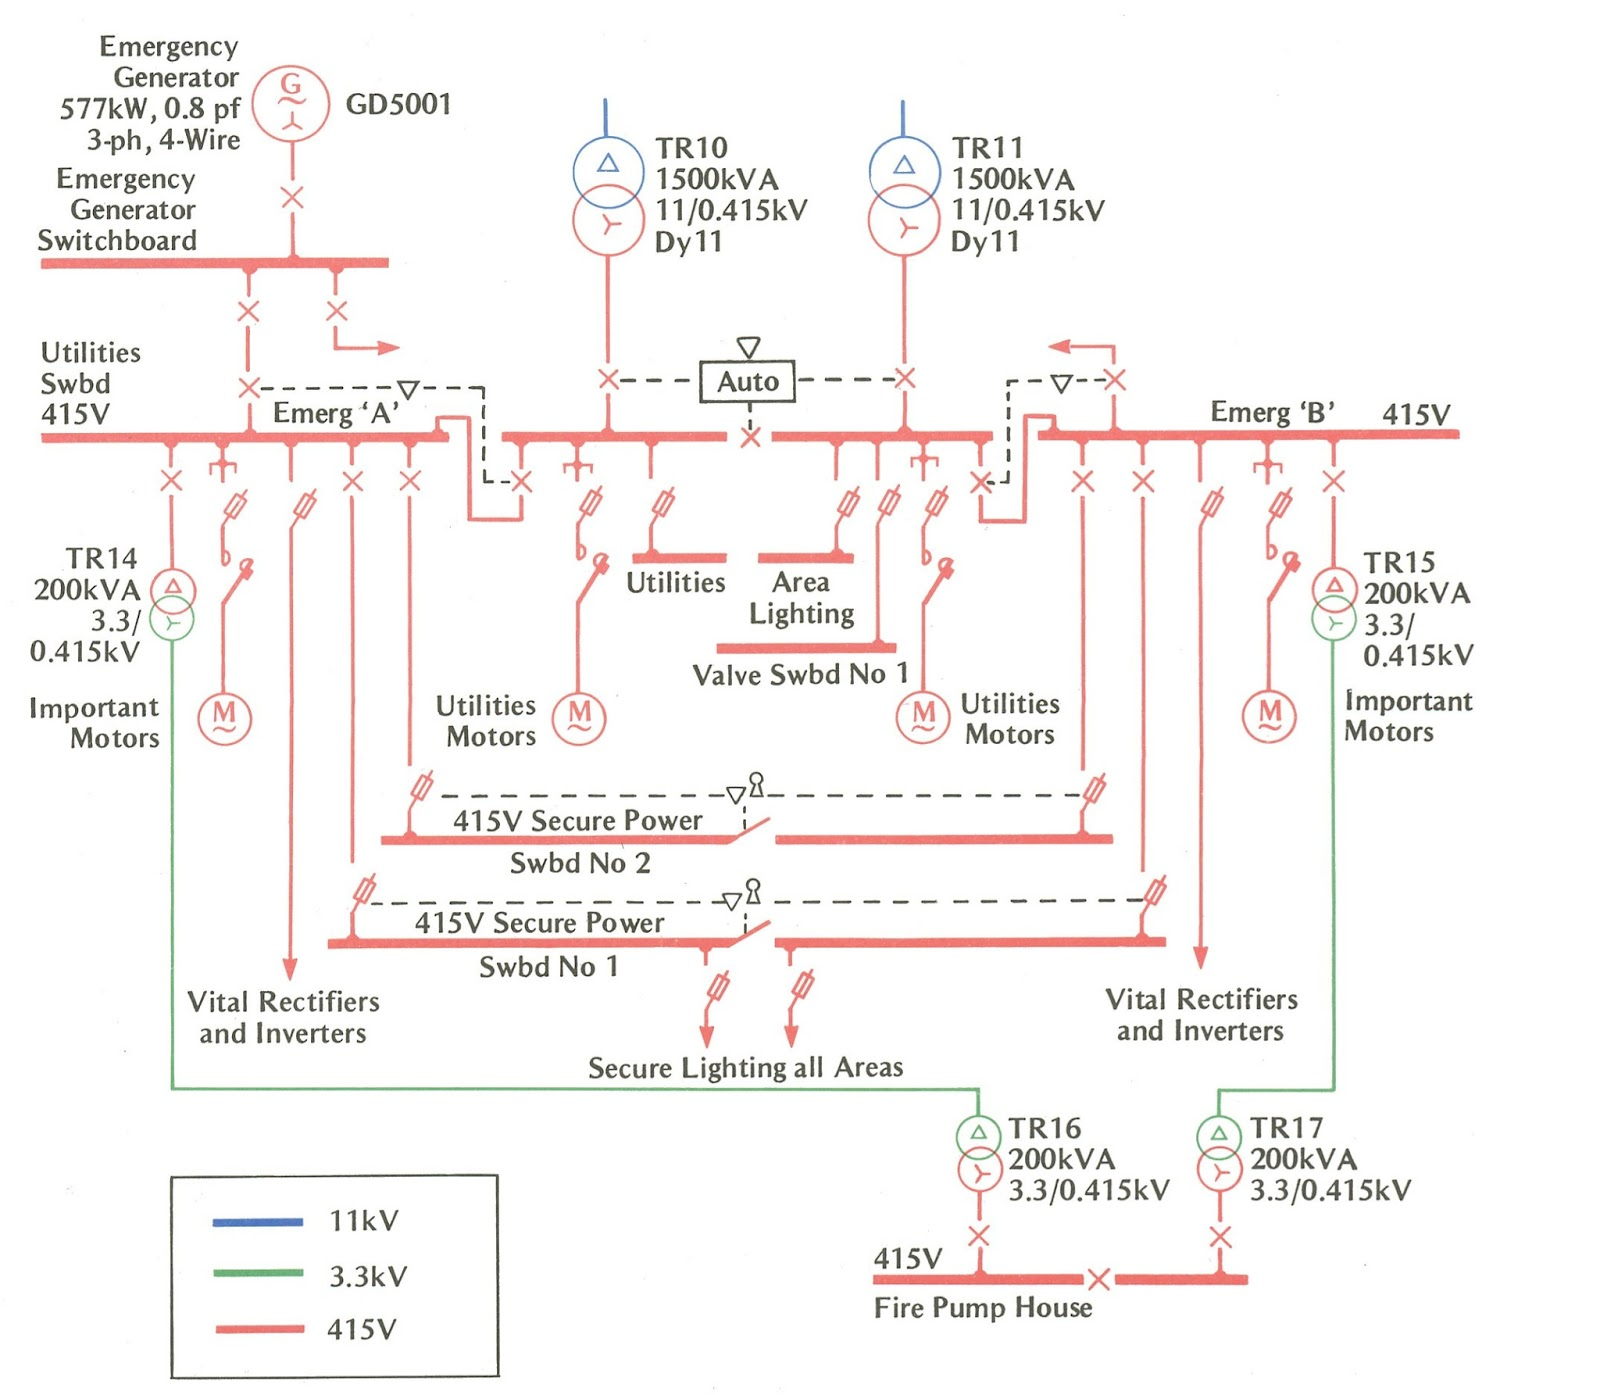 Ek 9000  Cummins Grid Heater Wiring Diagram On Western Snow Wiring Diagram Free Diagram